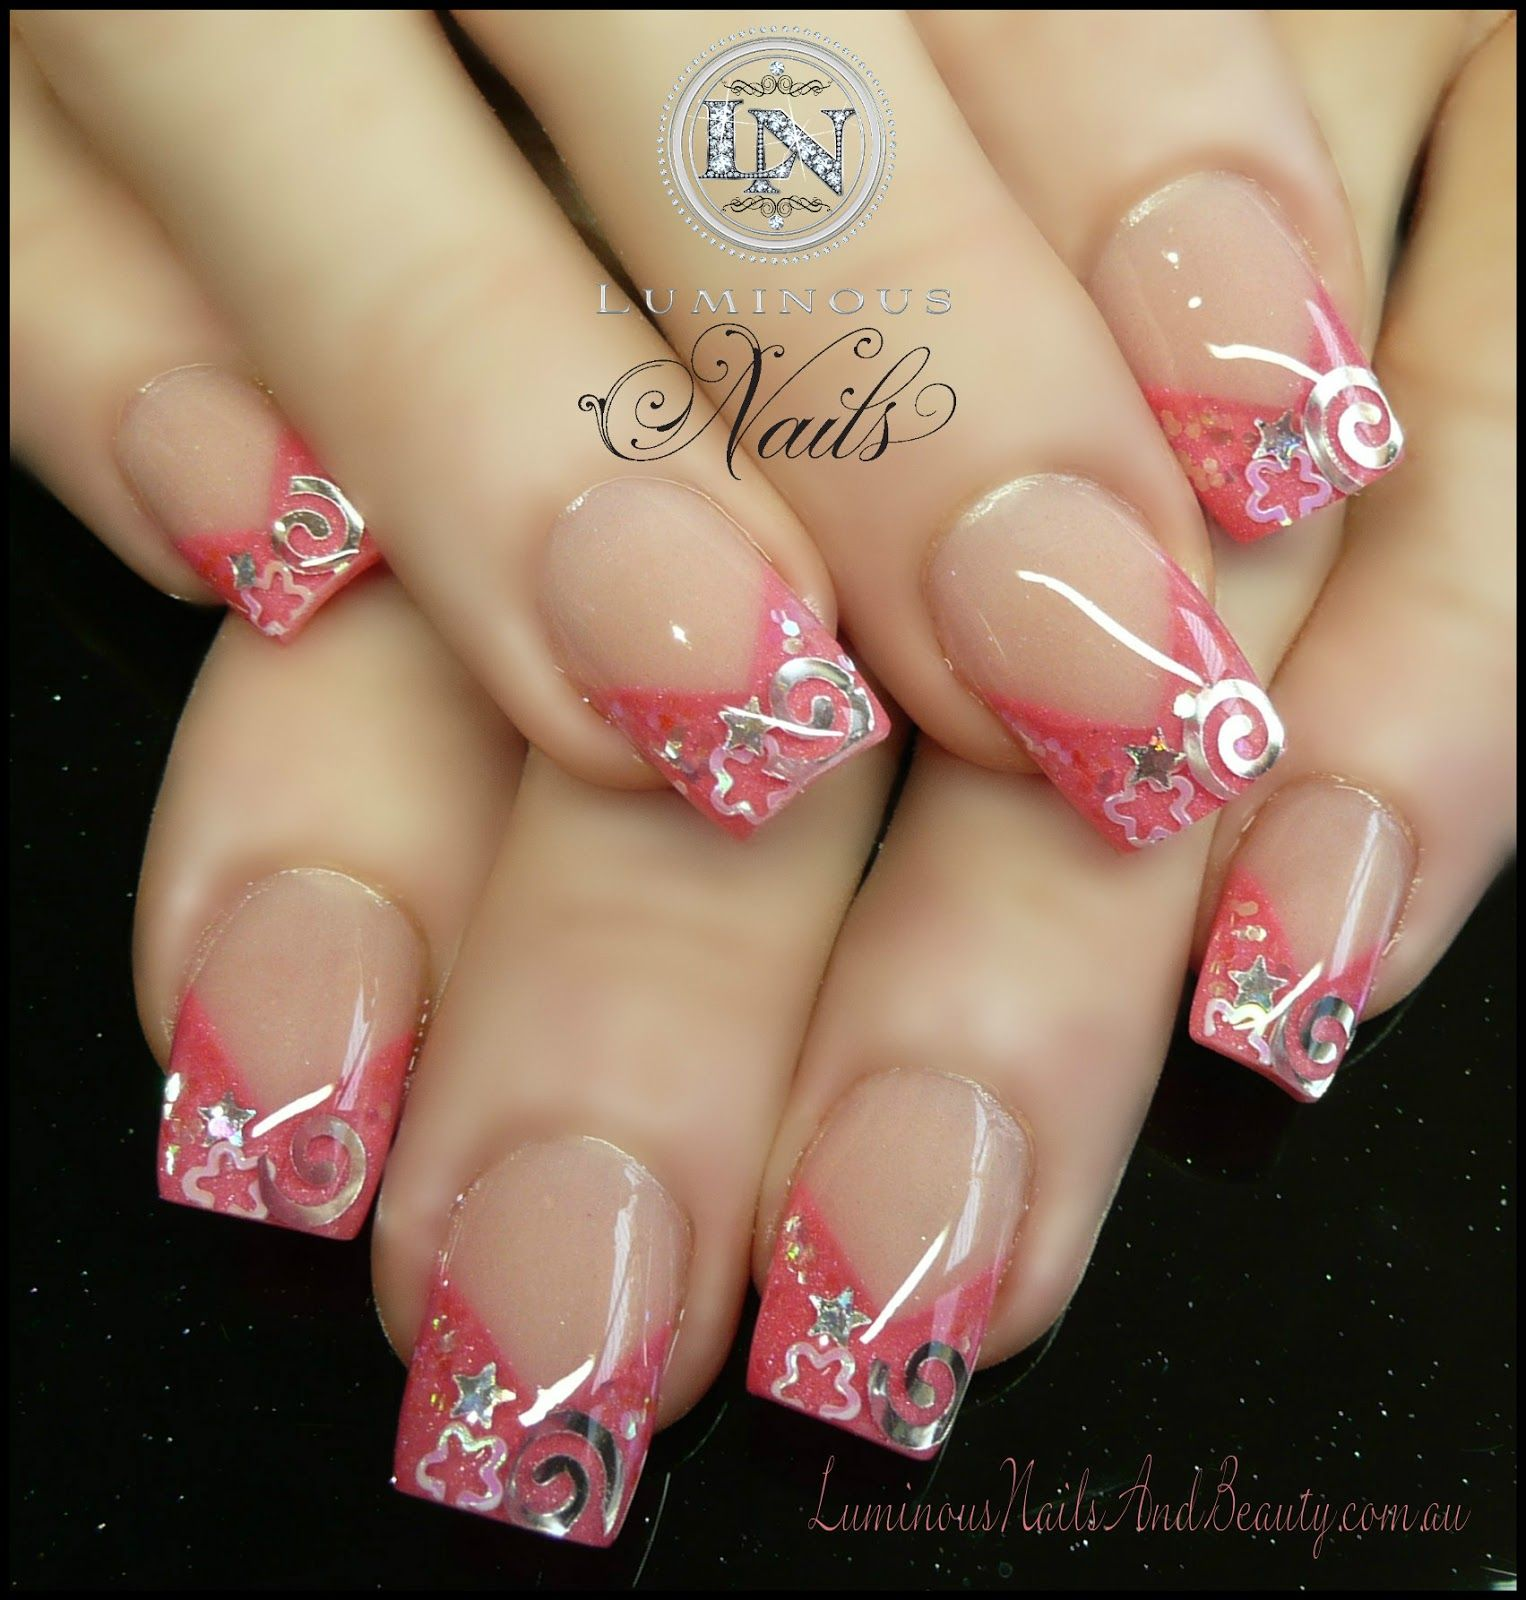 young nails sculpted gel nails | +Beauty,+Gold+Coast+Queensland.+ ...